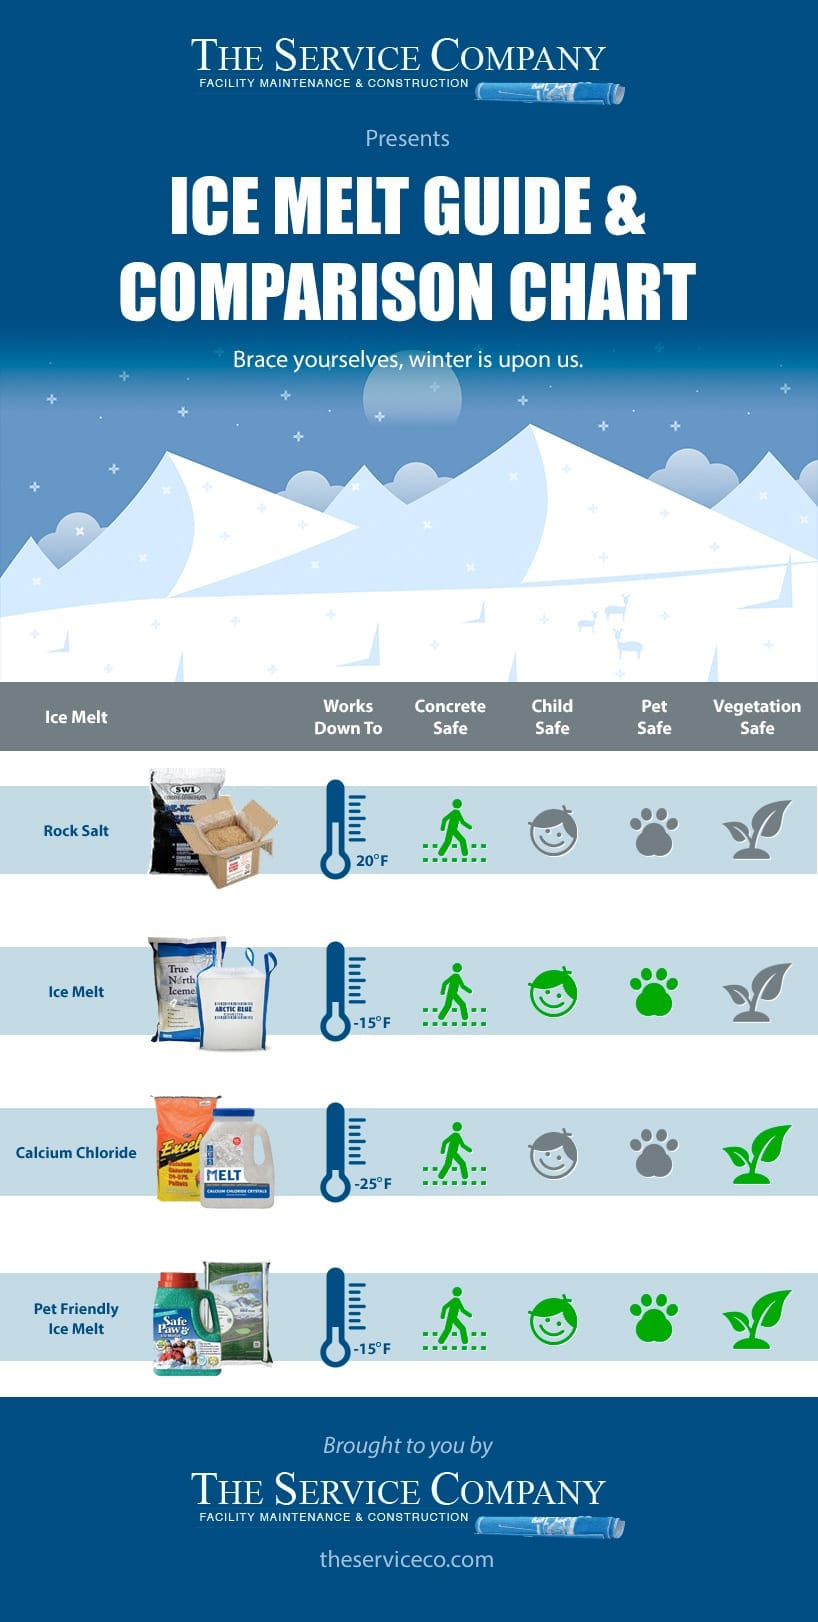 Ice Melt Guide and Comparison Chart